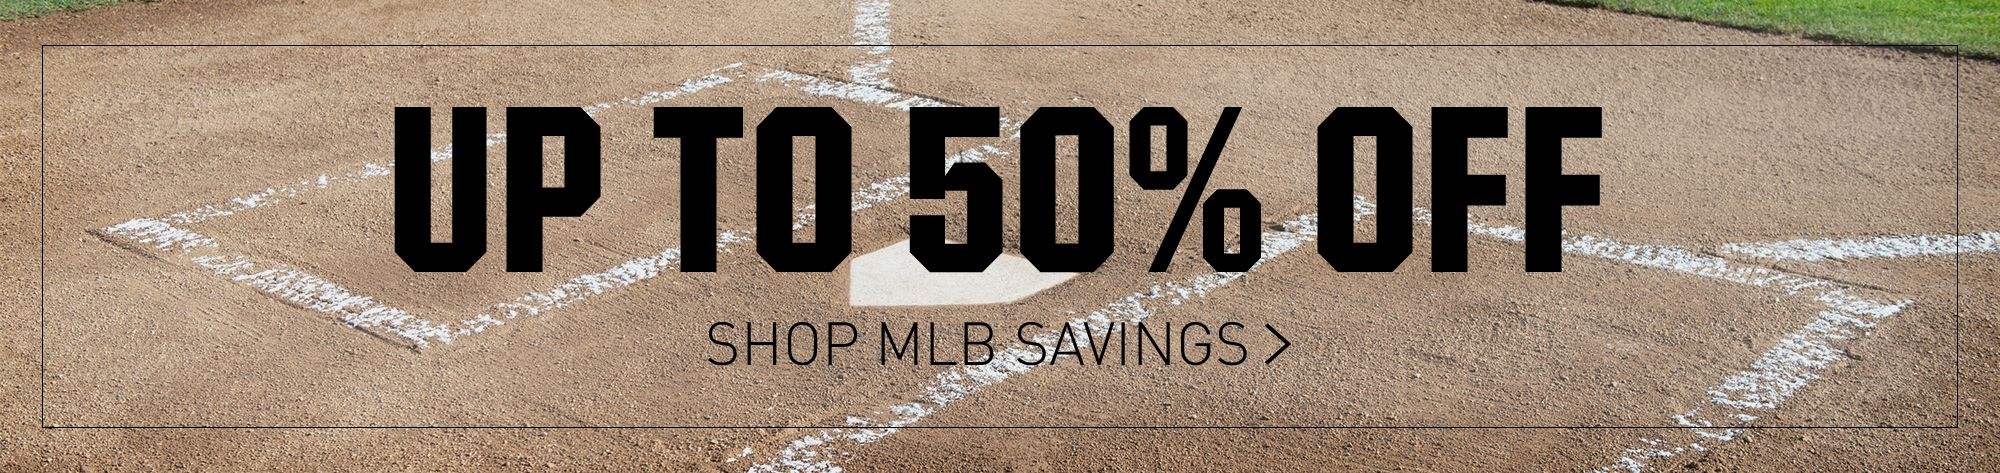 Shop MLB Savings - Up to 50% Off